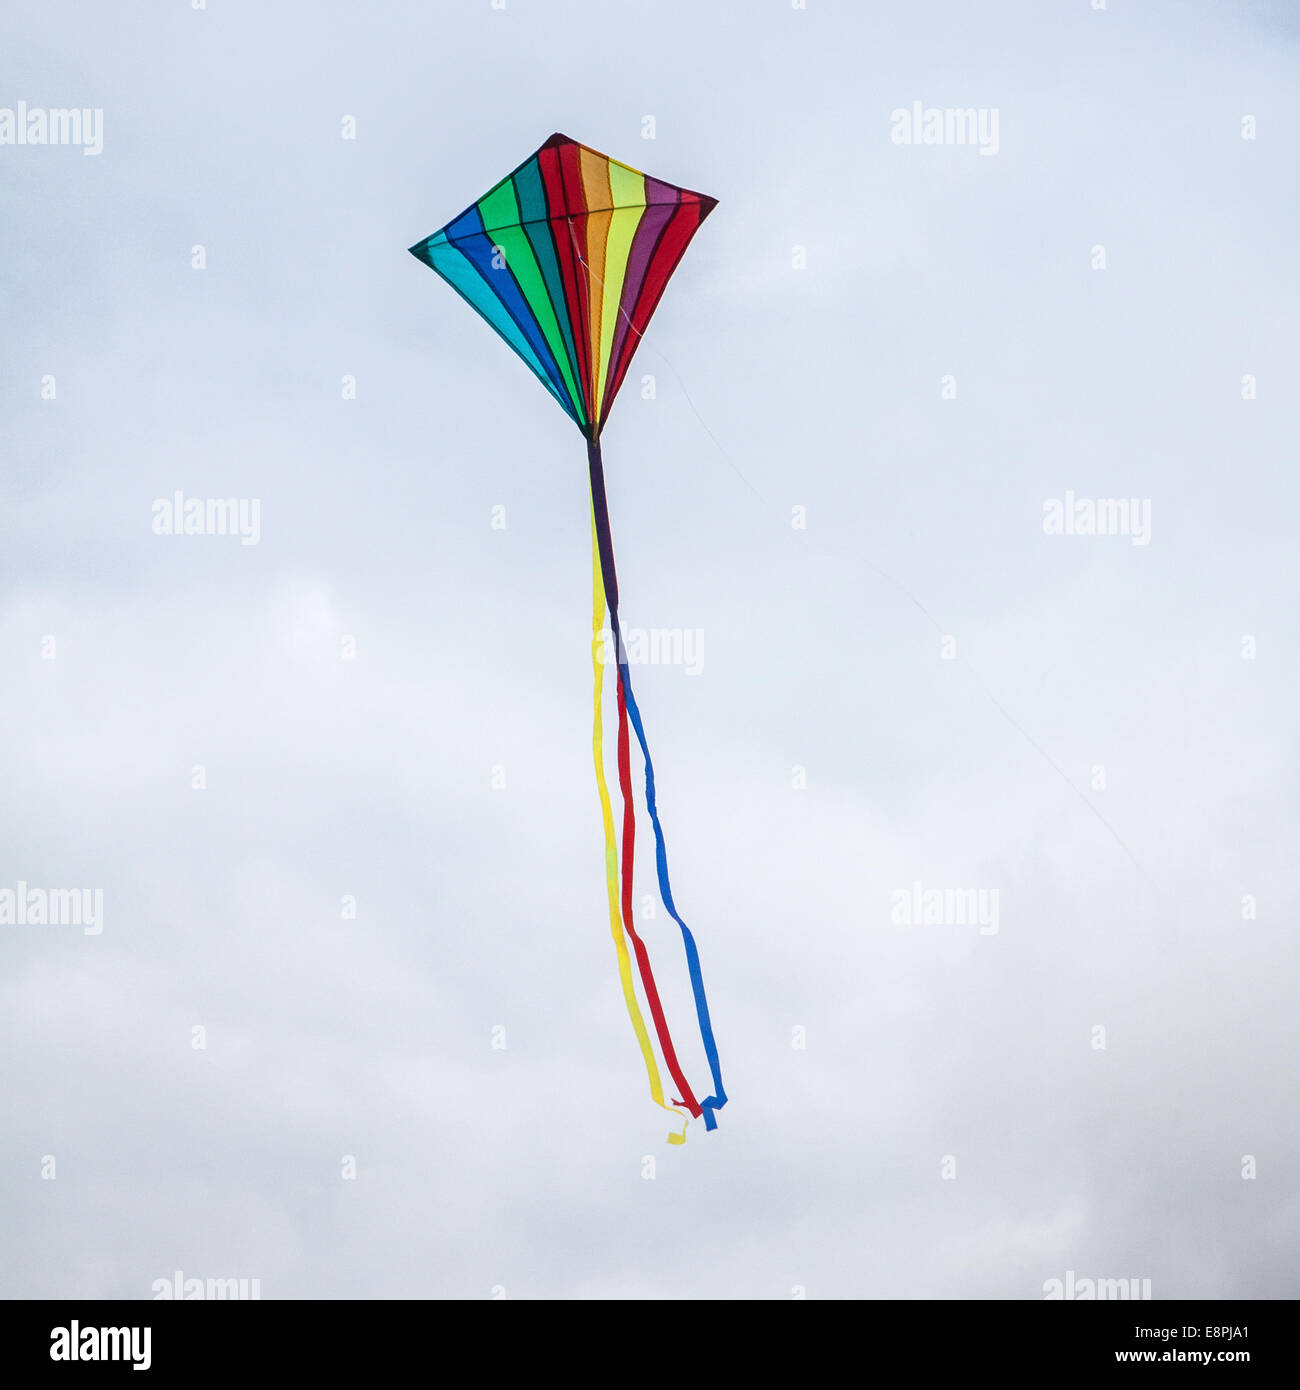 Rainbow coloured kite flying against a cloudy sky, West Sussex, England, United Kingdom. - Stock Image